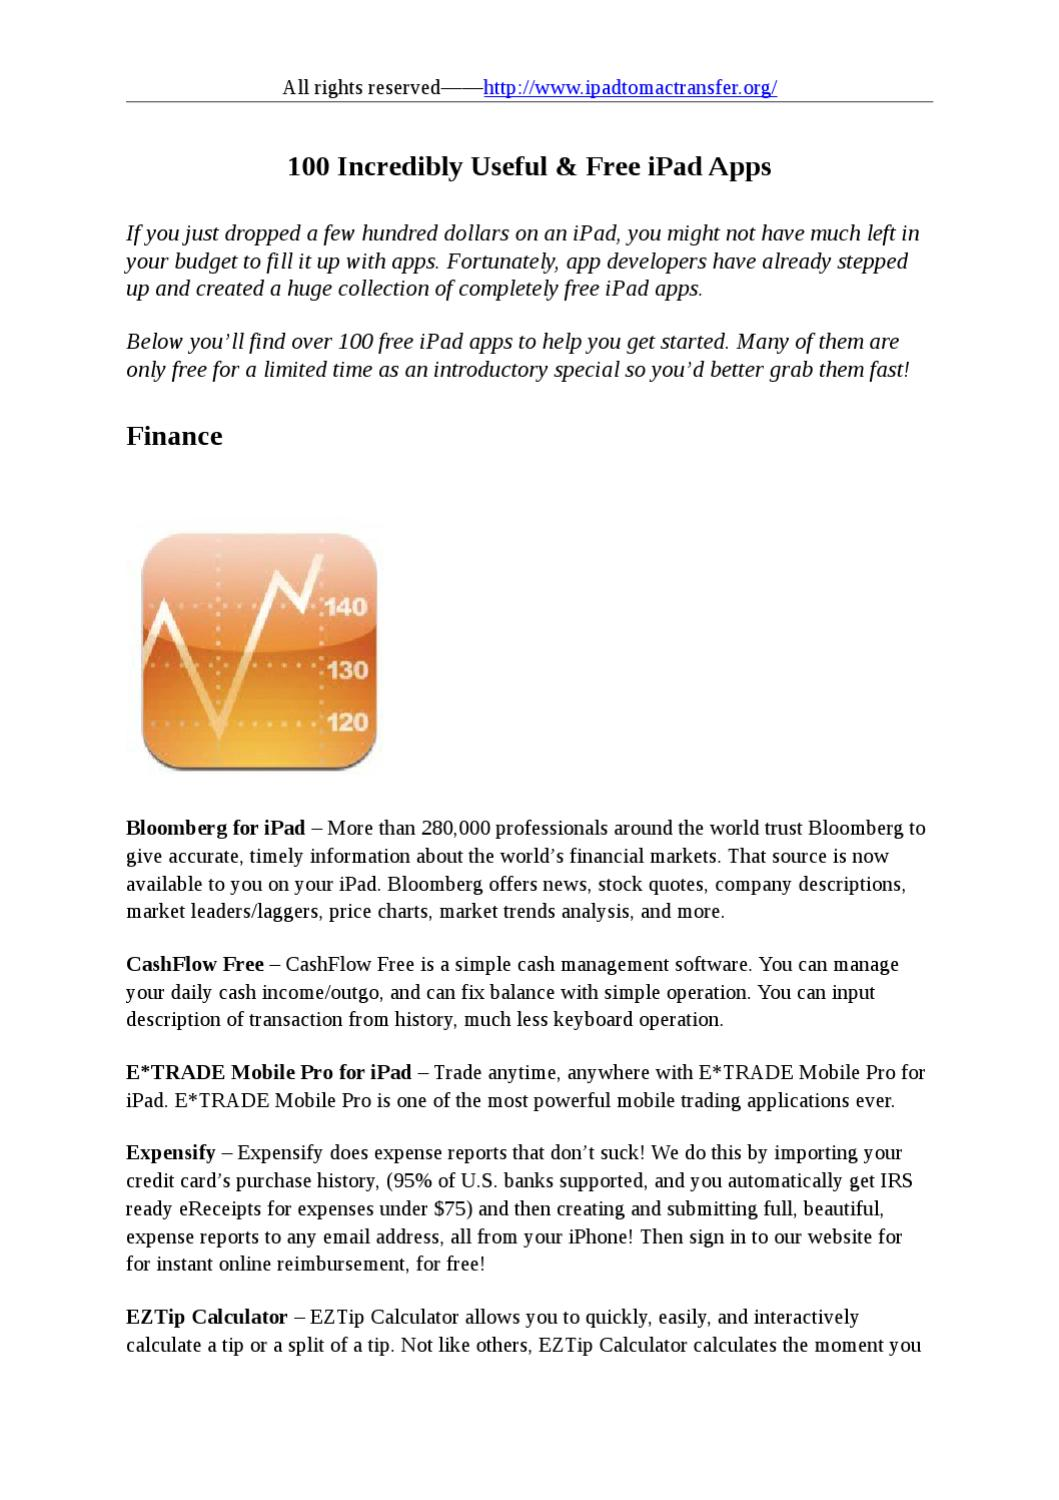 100 Incredibly Useful & Free iPad Apps-Finance by stafenia